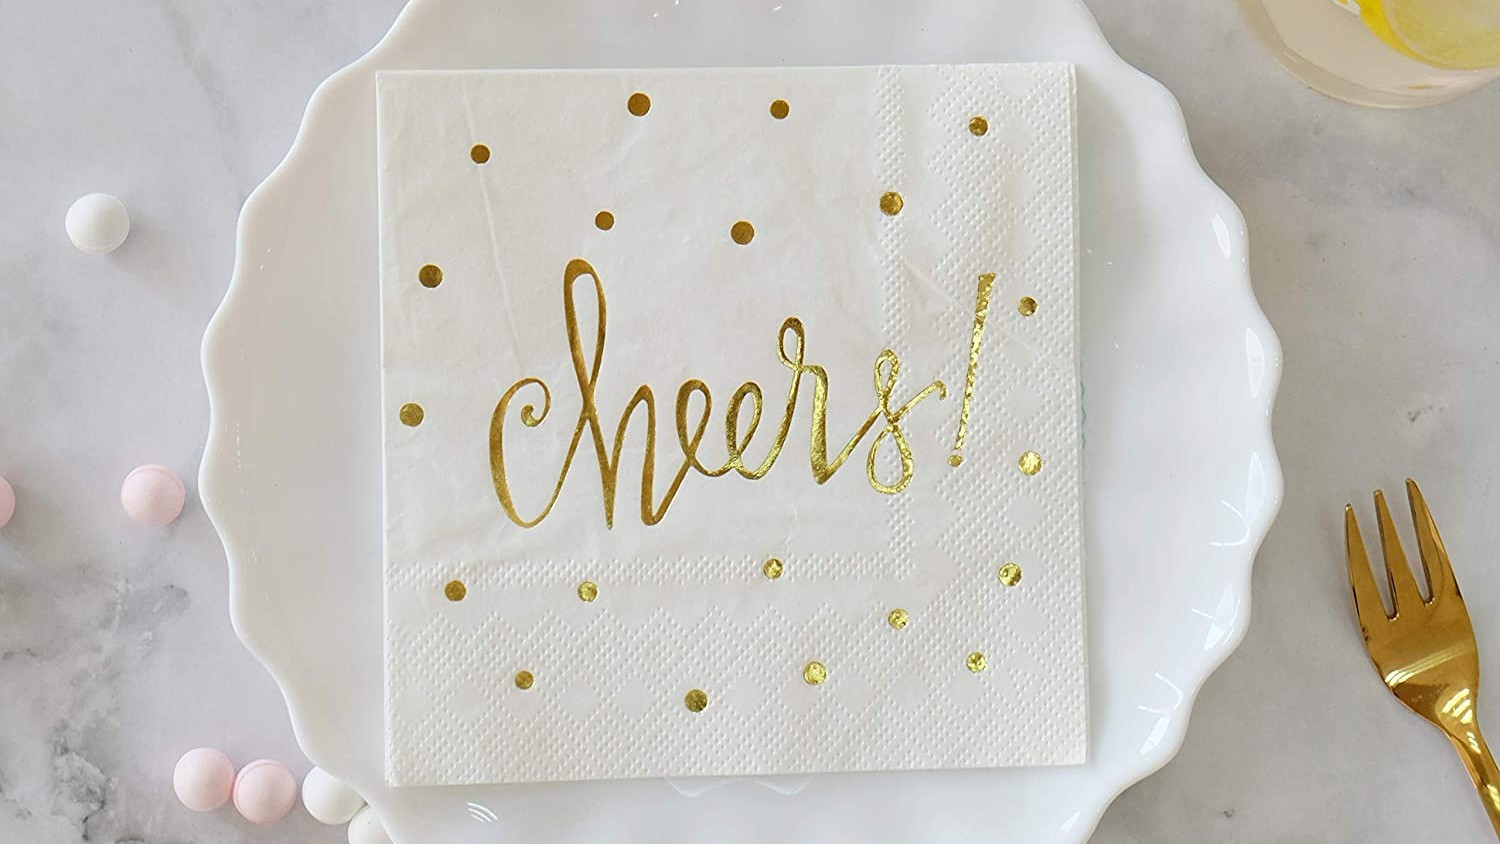 Decorative Gold Foil Napkins That Are Perfect for Your Next Party